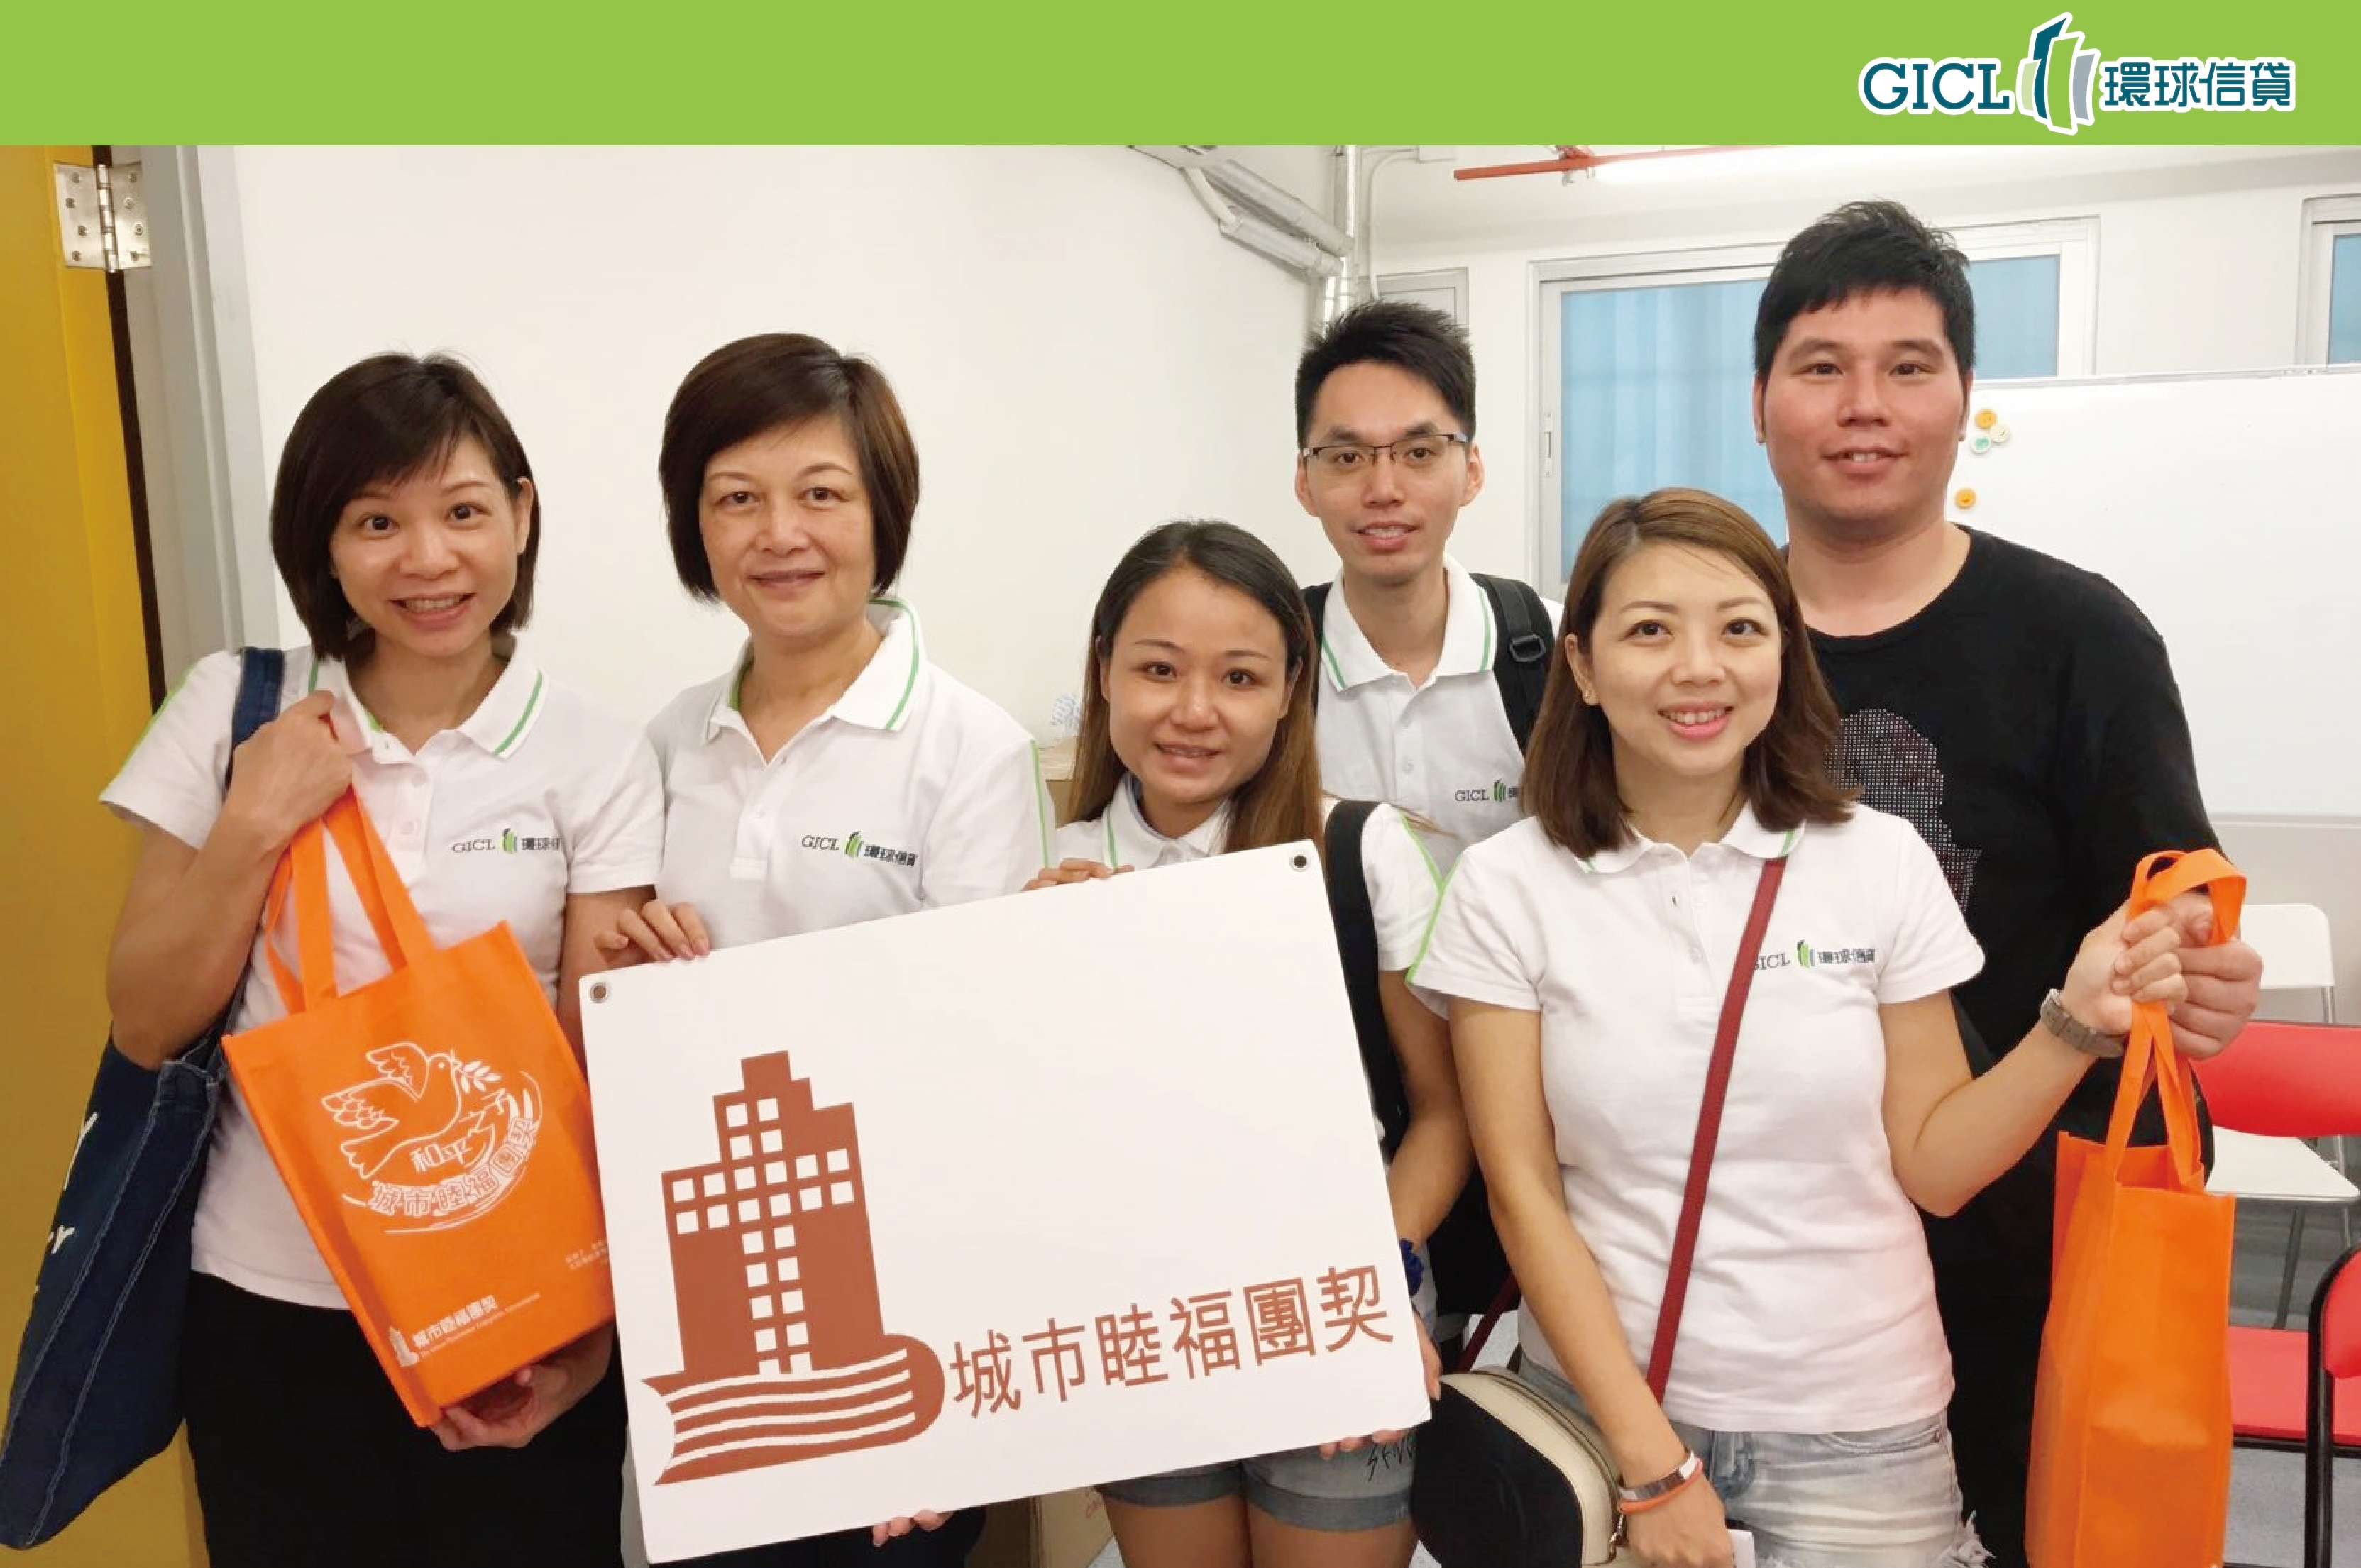 GICL X UPEF – HOME VISIT ACTIVITY IN KWAI SHING DISTRICT 2017